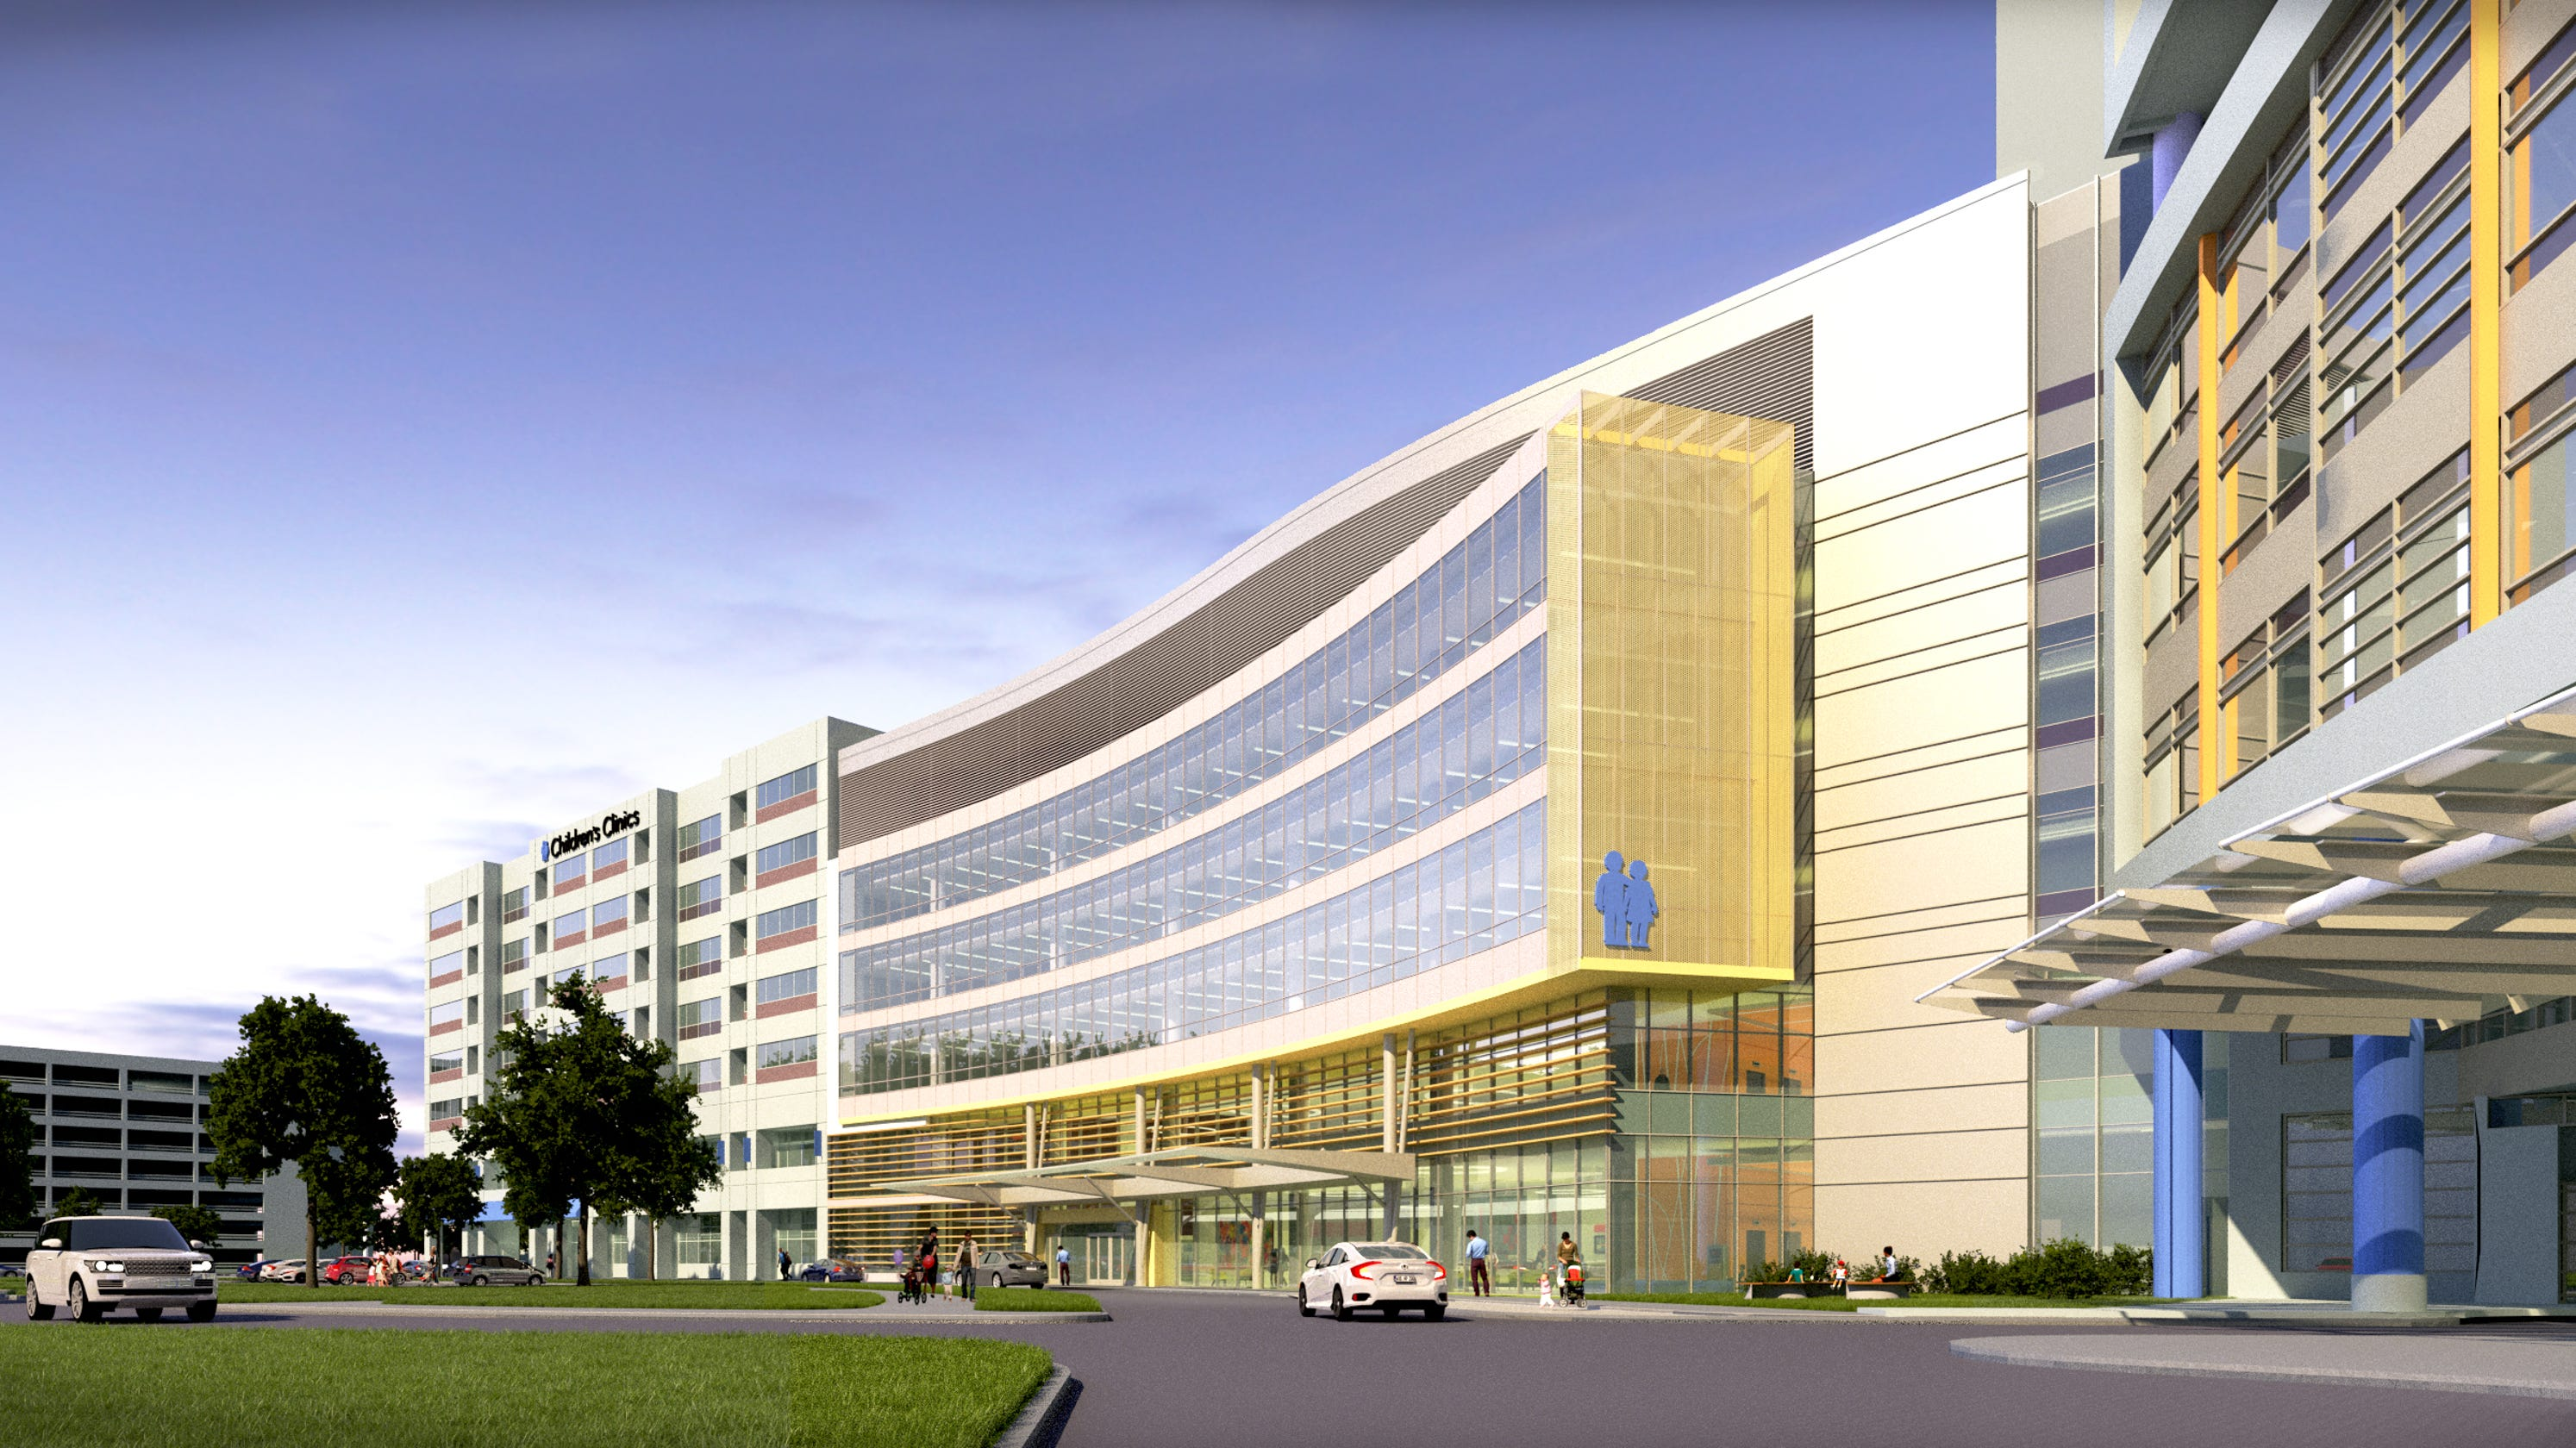 Chw Hospital Addition Viewing North Crop Width Height Fit Bounds Childrens Wisconsin Announces Million